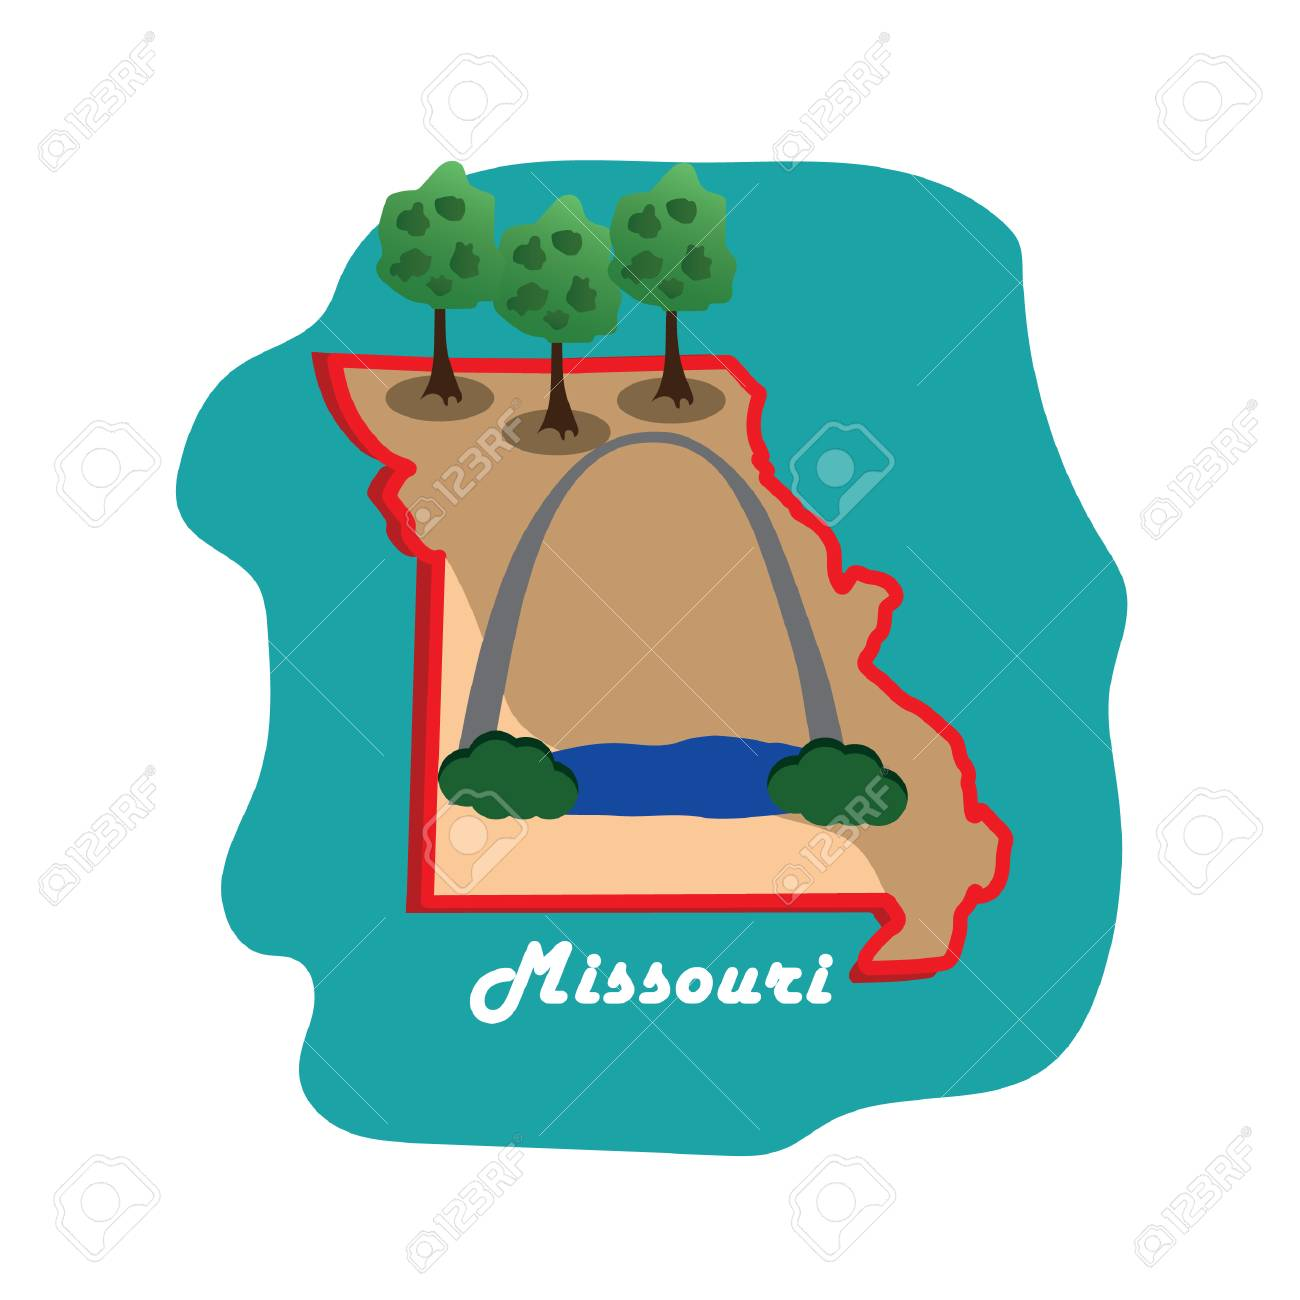 St Louis State Map.Missouri State Map With St Louis Gateway Arch Royalty Free Cliparts